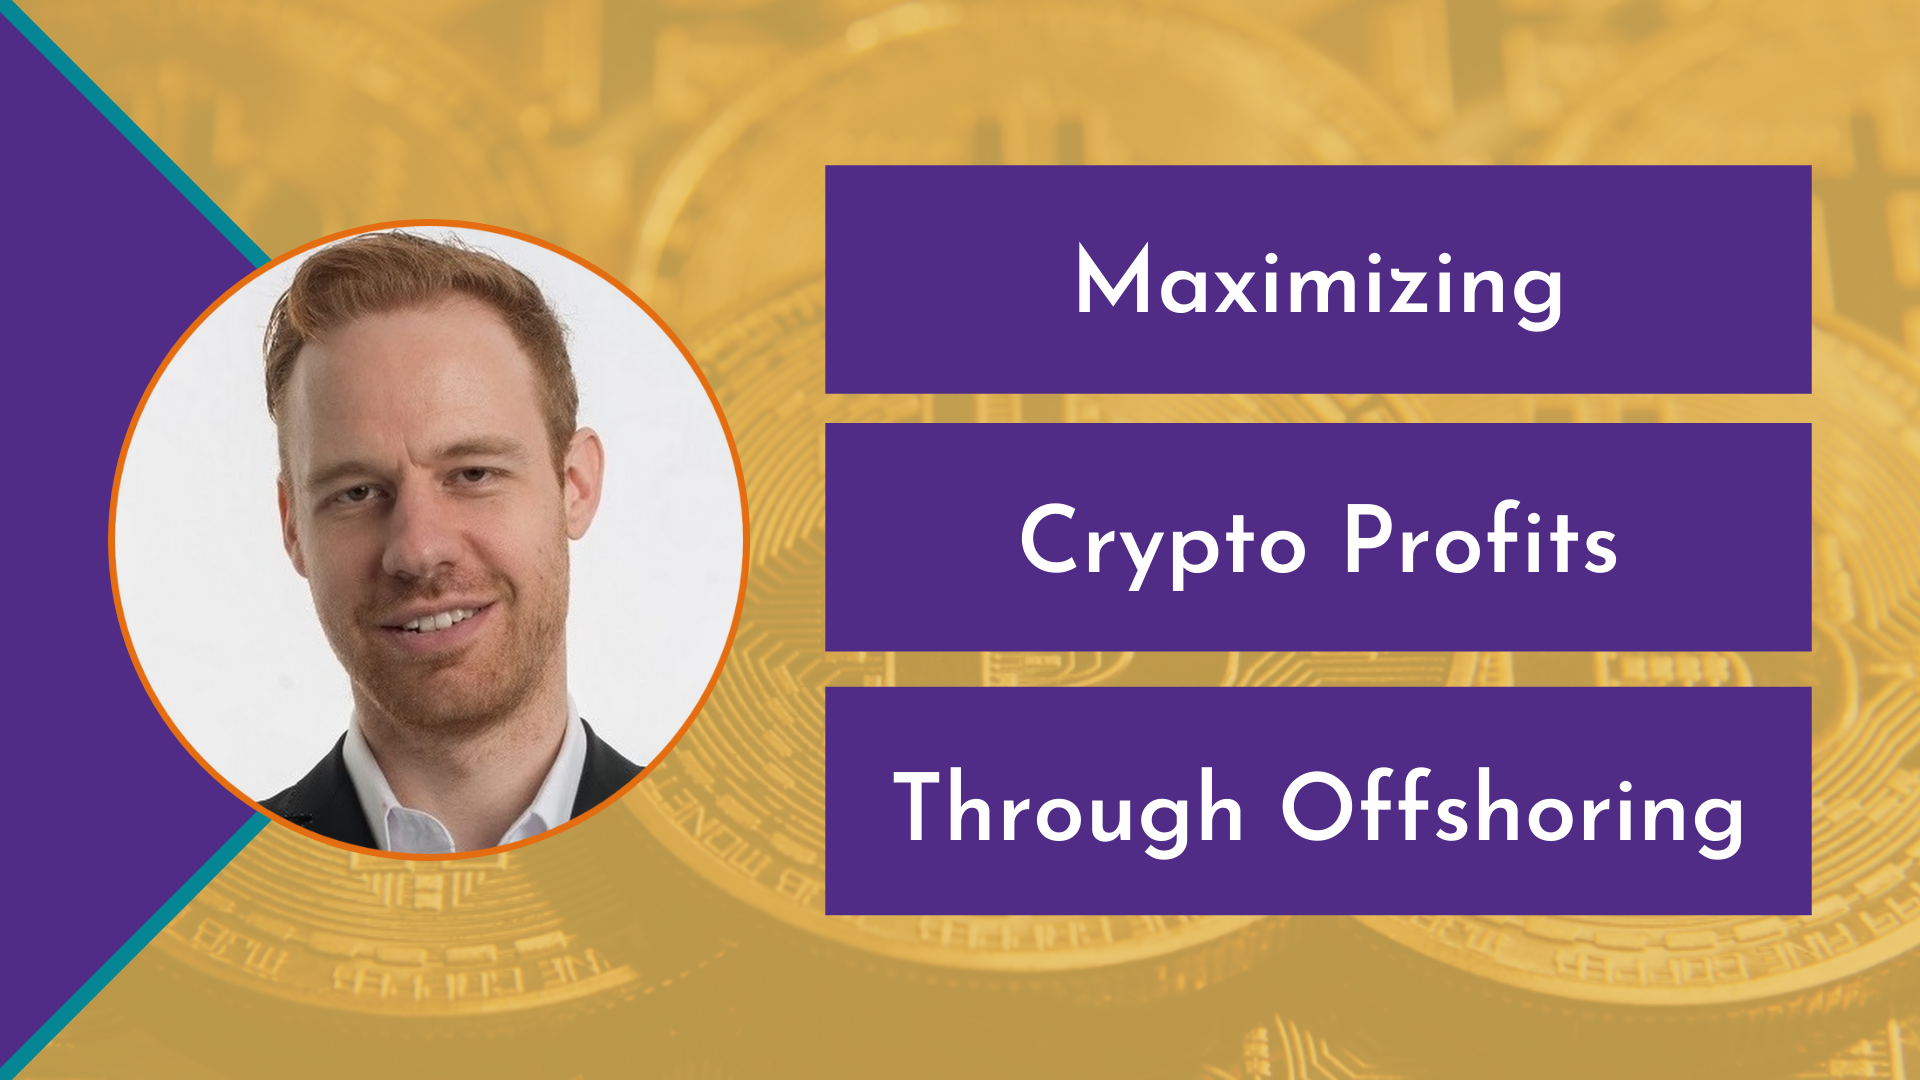 Offshore Citizen, offshore crypto strategy, crypto tax strategy, crypto offshore, offshore citizen, bitcoin taxes, bitcoin taxation, minimizing bitcoin tax, minimizing cryptocurrency tax, offshore crypto structures